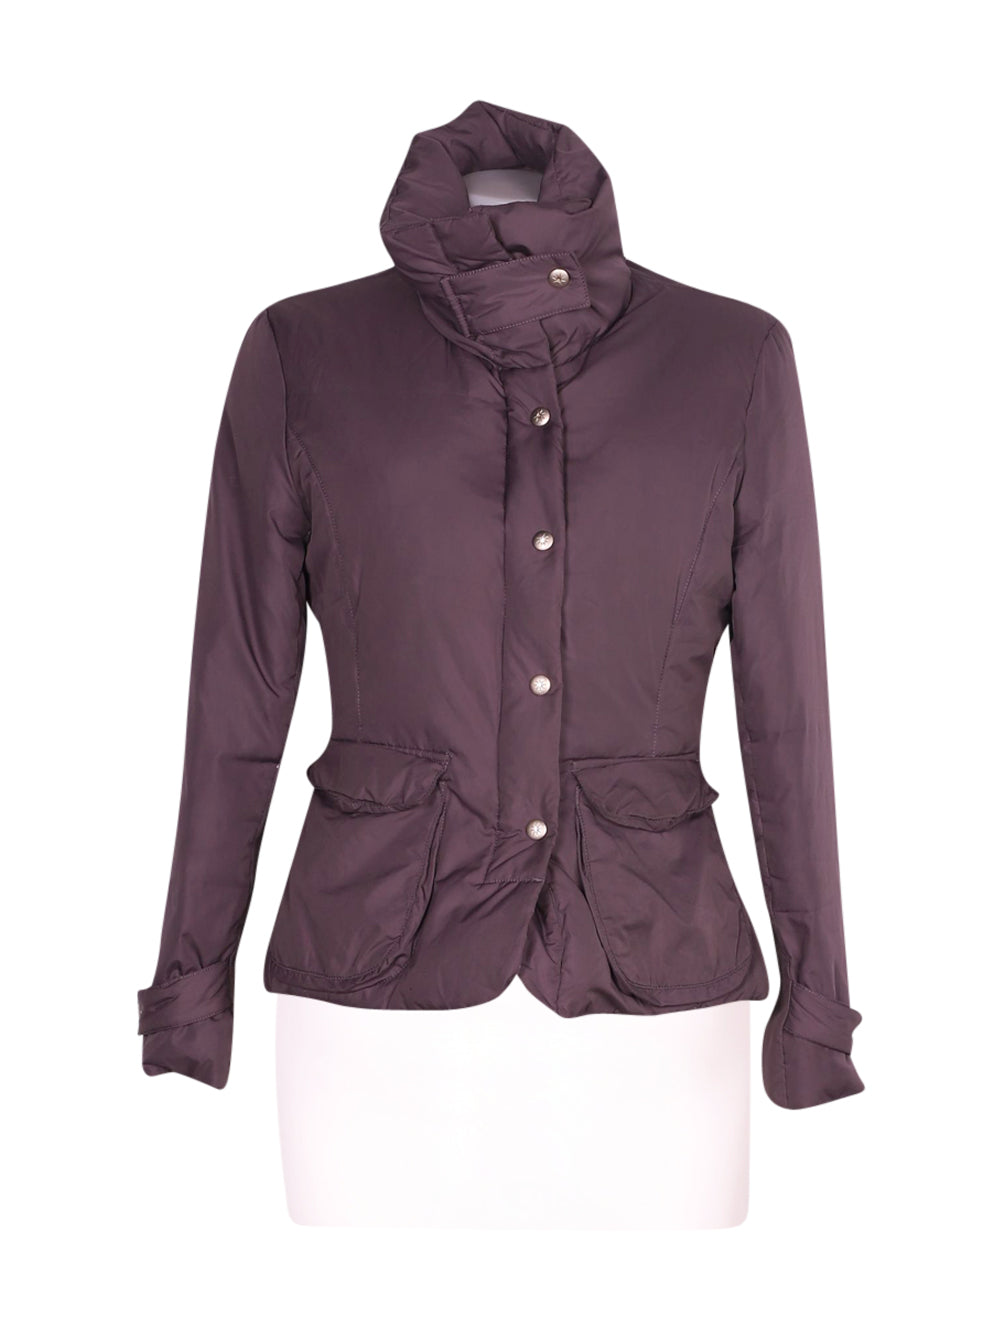 Front photo of Preloved OPD Violet Woman's jacket - size 8/S